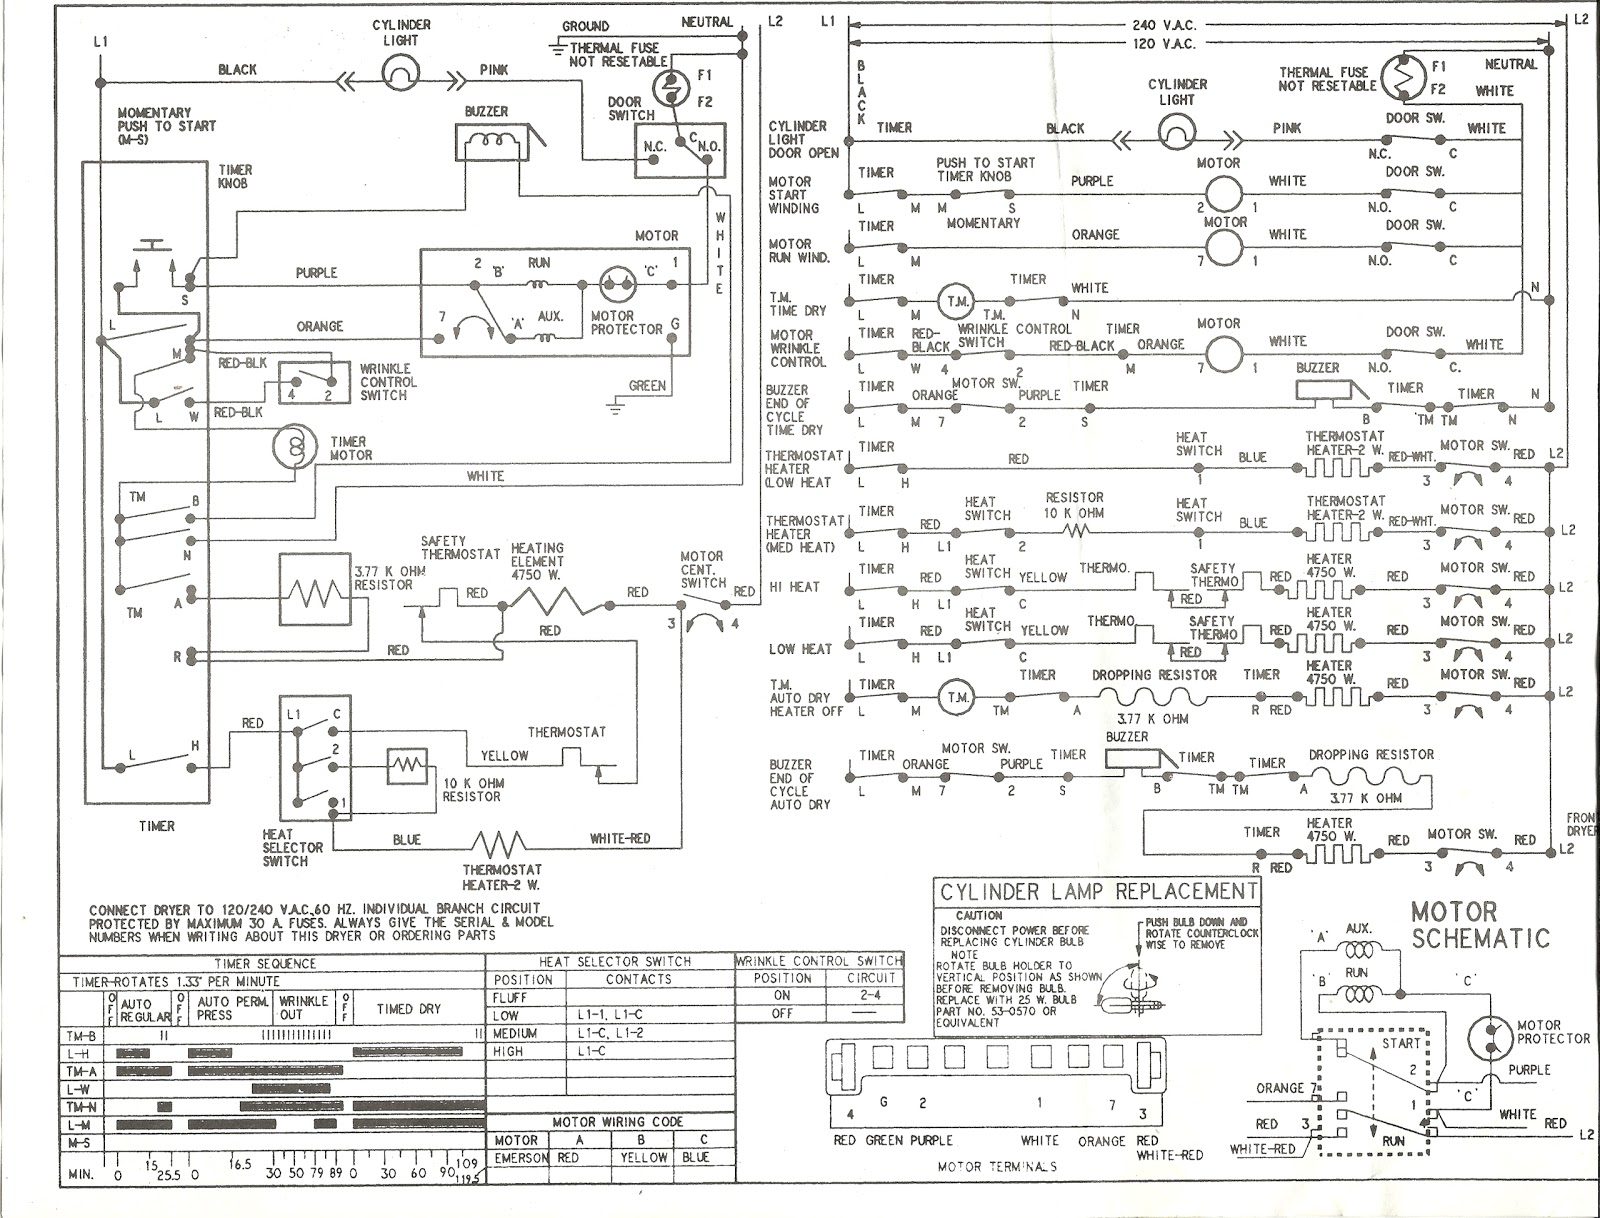 appliance talk kenmore series electric dryer wiring diagram schematic Electric Dryer Timer kenmore series electric dryer wiring diagram schematic